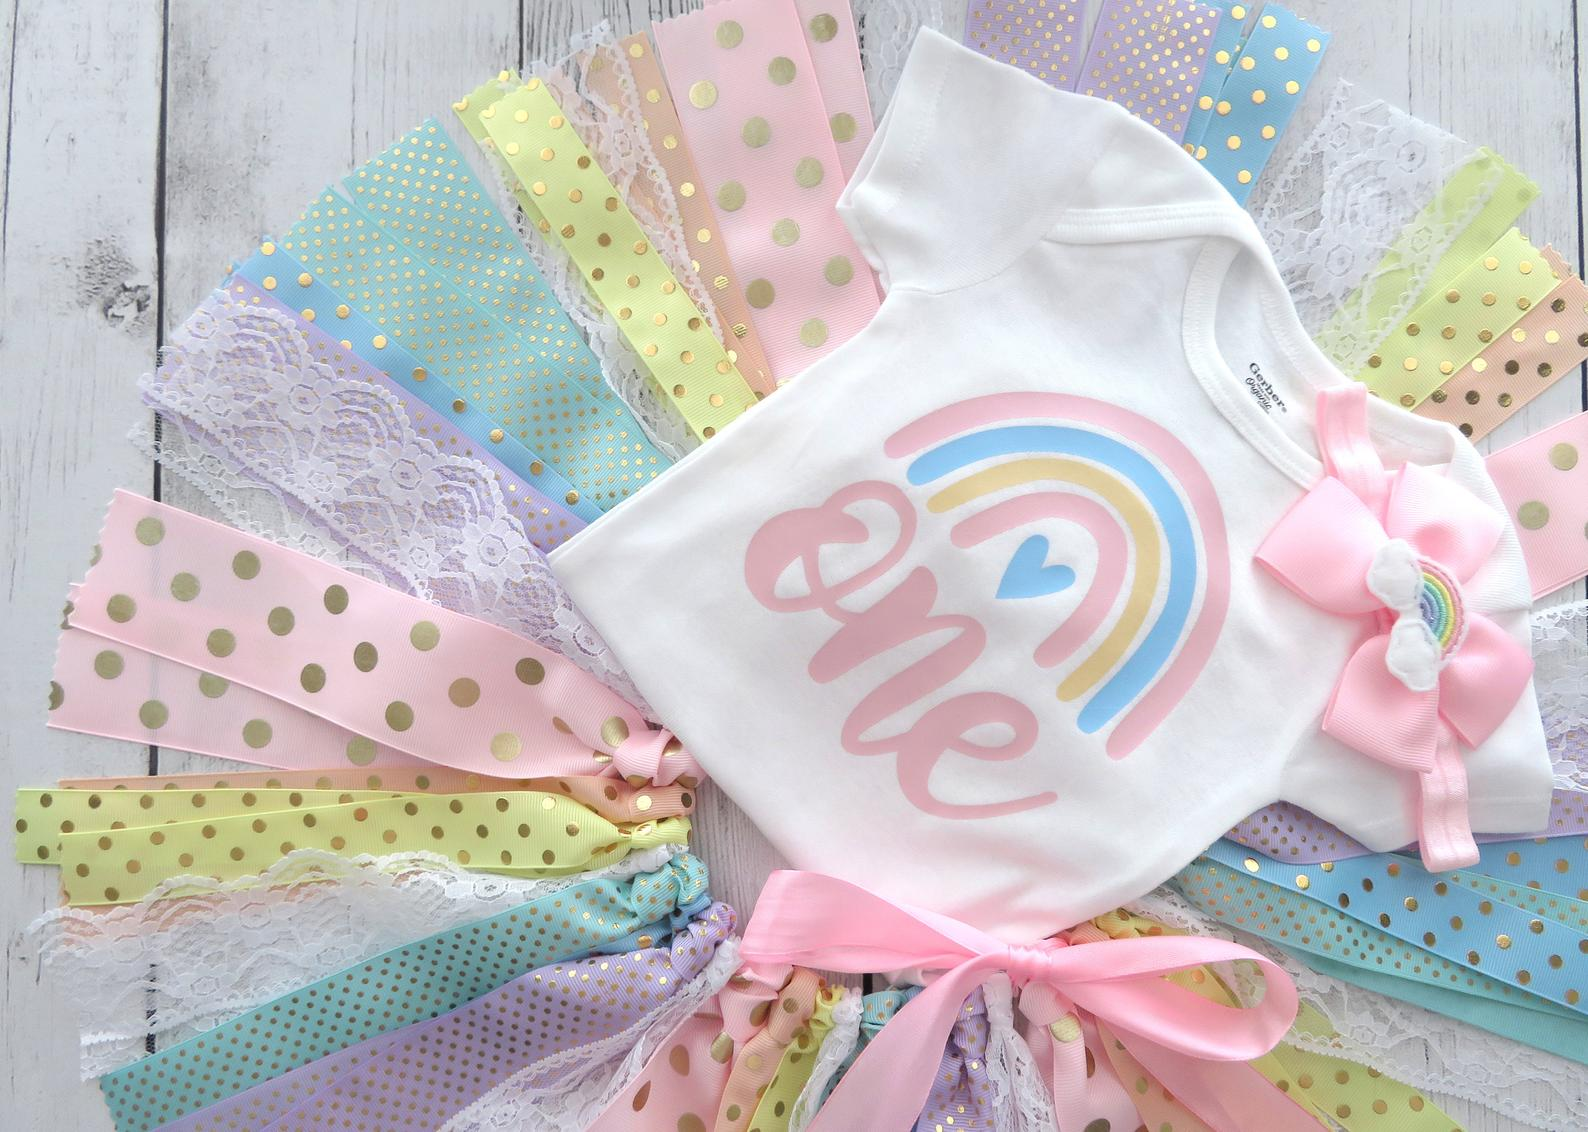 Pastel Rainbow First Birthday Outfit with Fabric Tutu, Headband and Shoes - 1st birthday dress, pink rainbow, first birthday outfit girl,